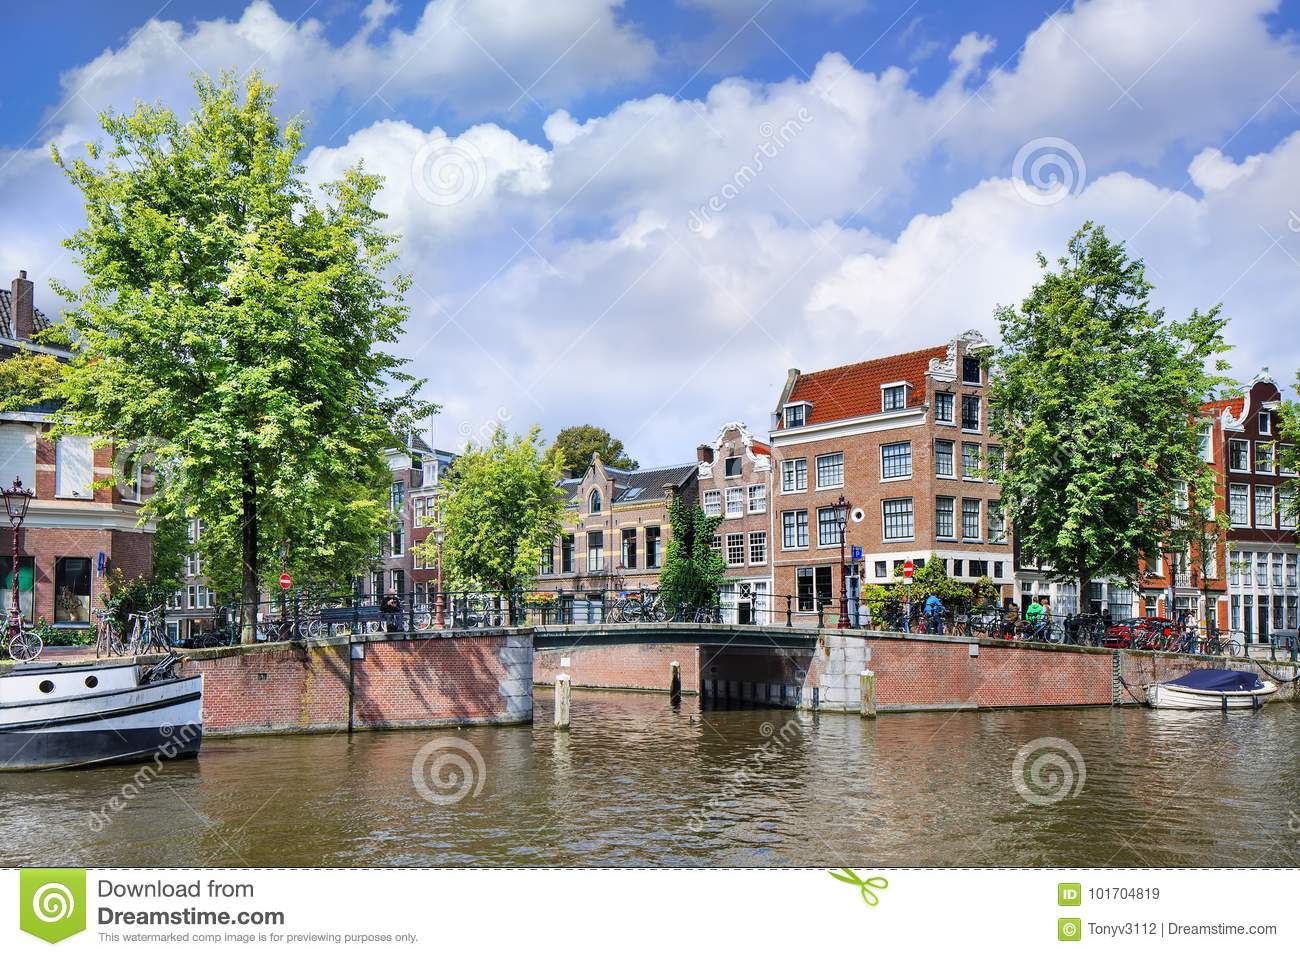 Renovated mansions in Amsterdam historical canal belt, Ntherlands